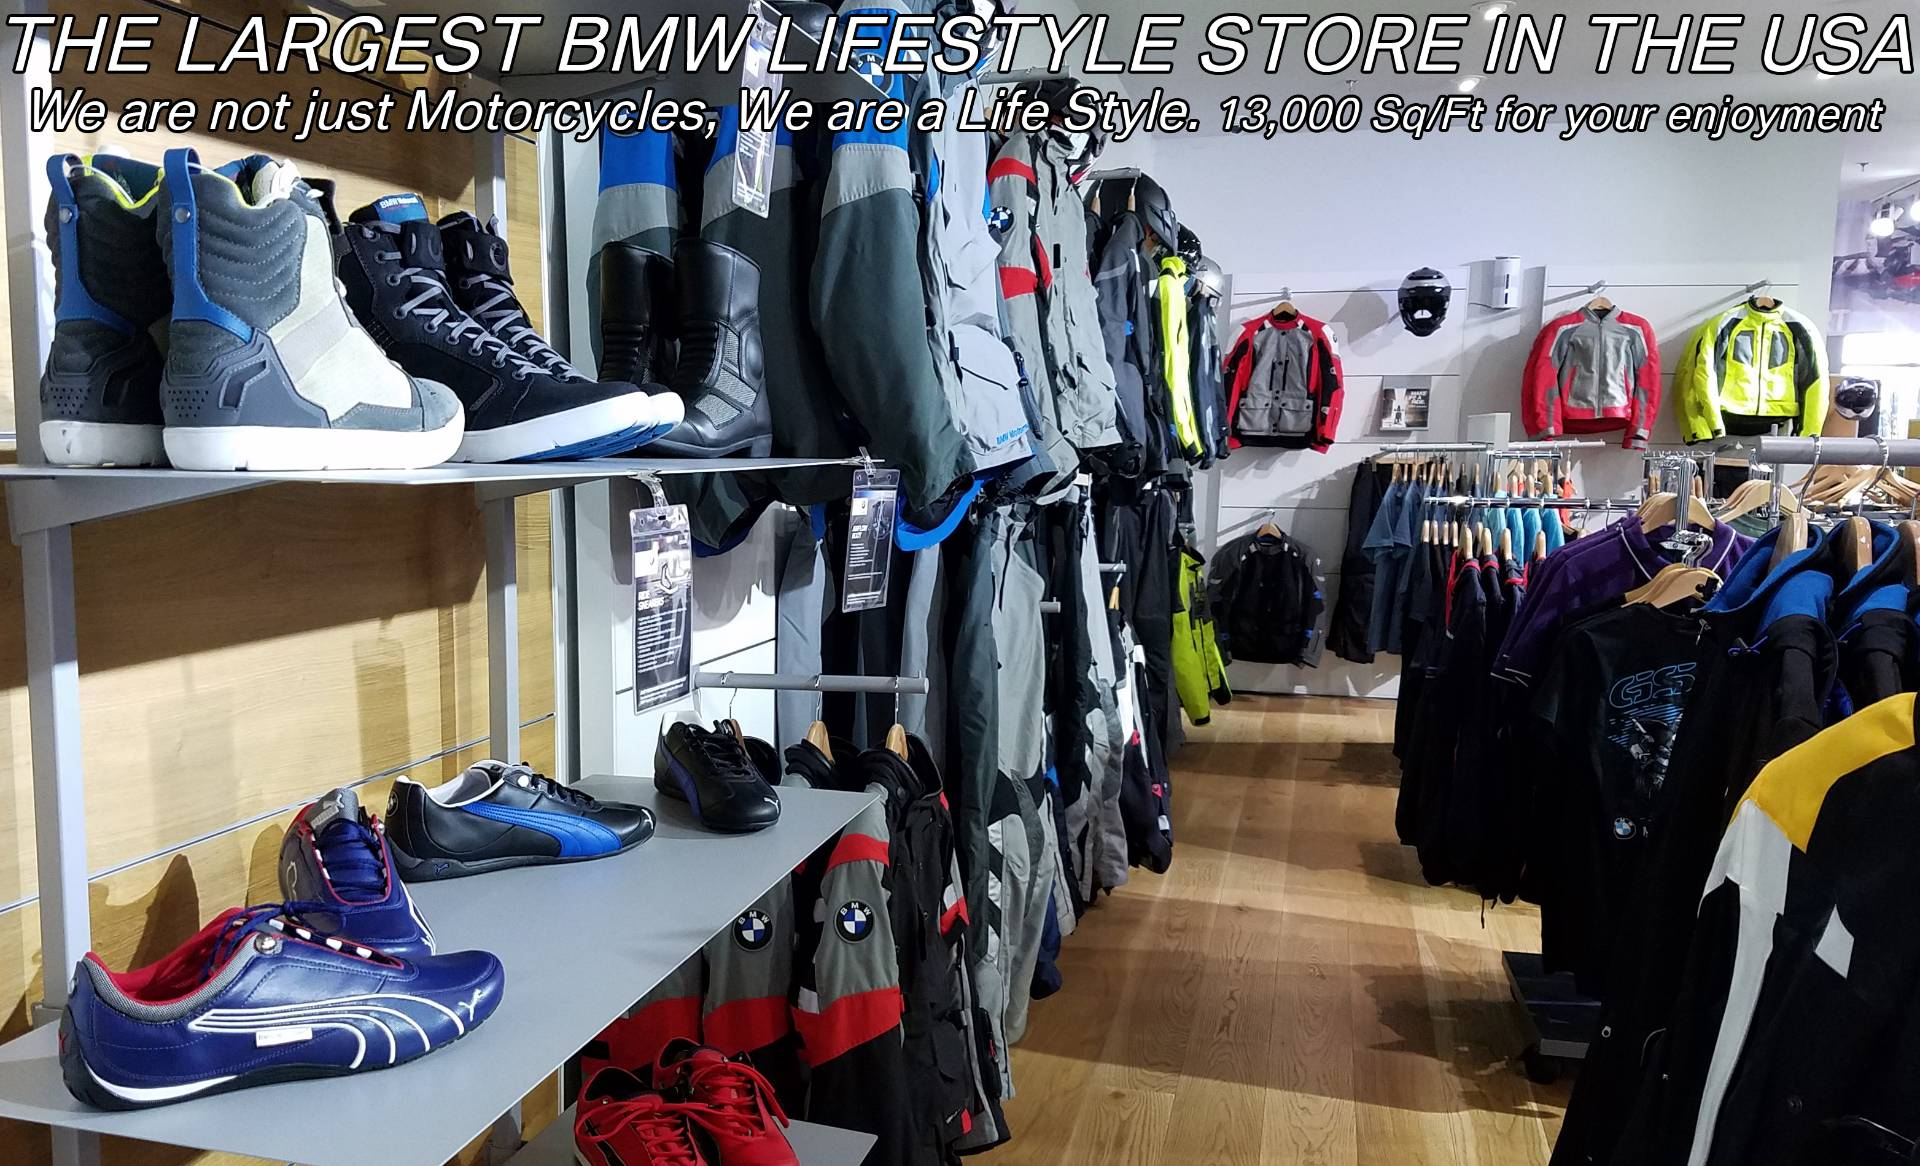 BMW Motorcycles of Miami, Motorcycles of Miami, Motorcycles Miami, New Motorcycles, Used Motorcycles, pre-owned. #BMWMotorcyclesOfMiami #MotorcyclesOfMiami.